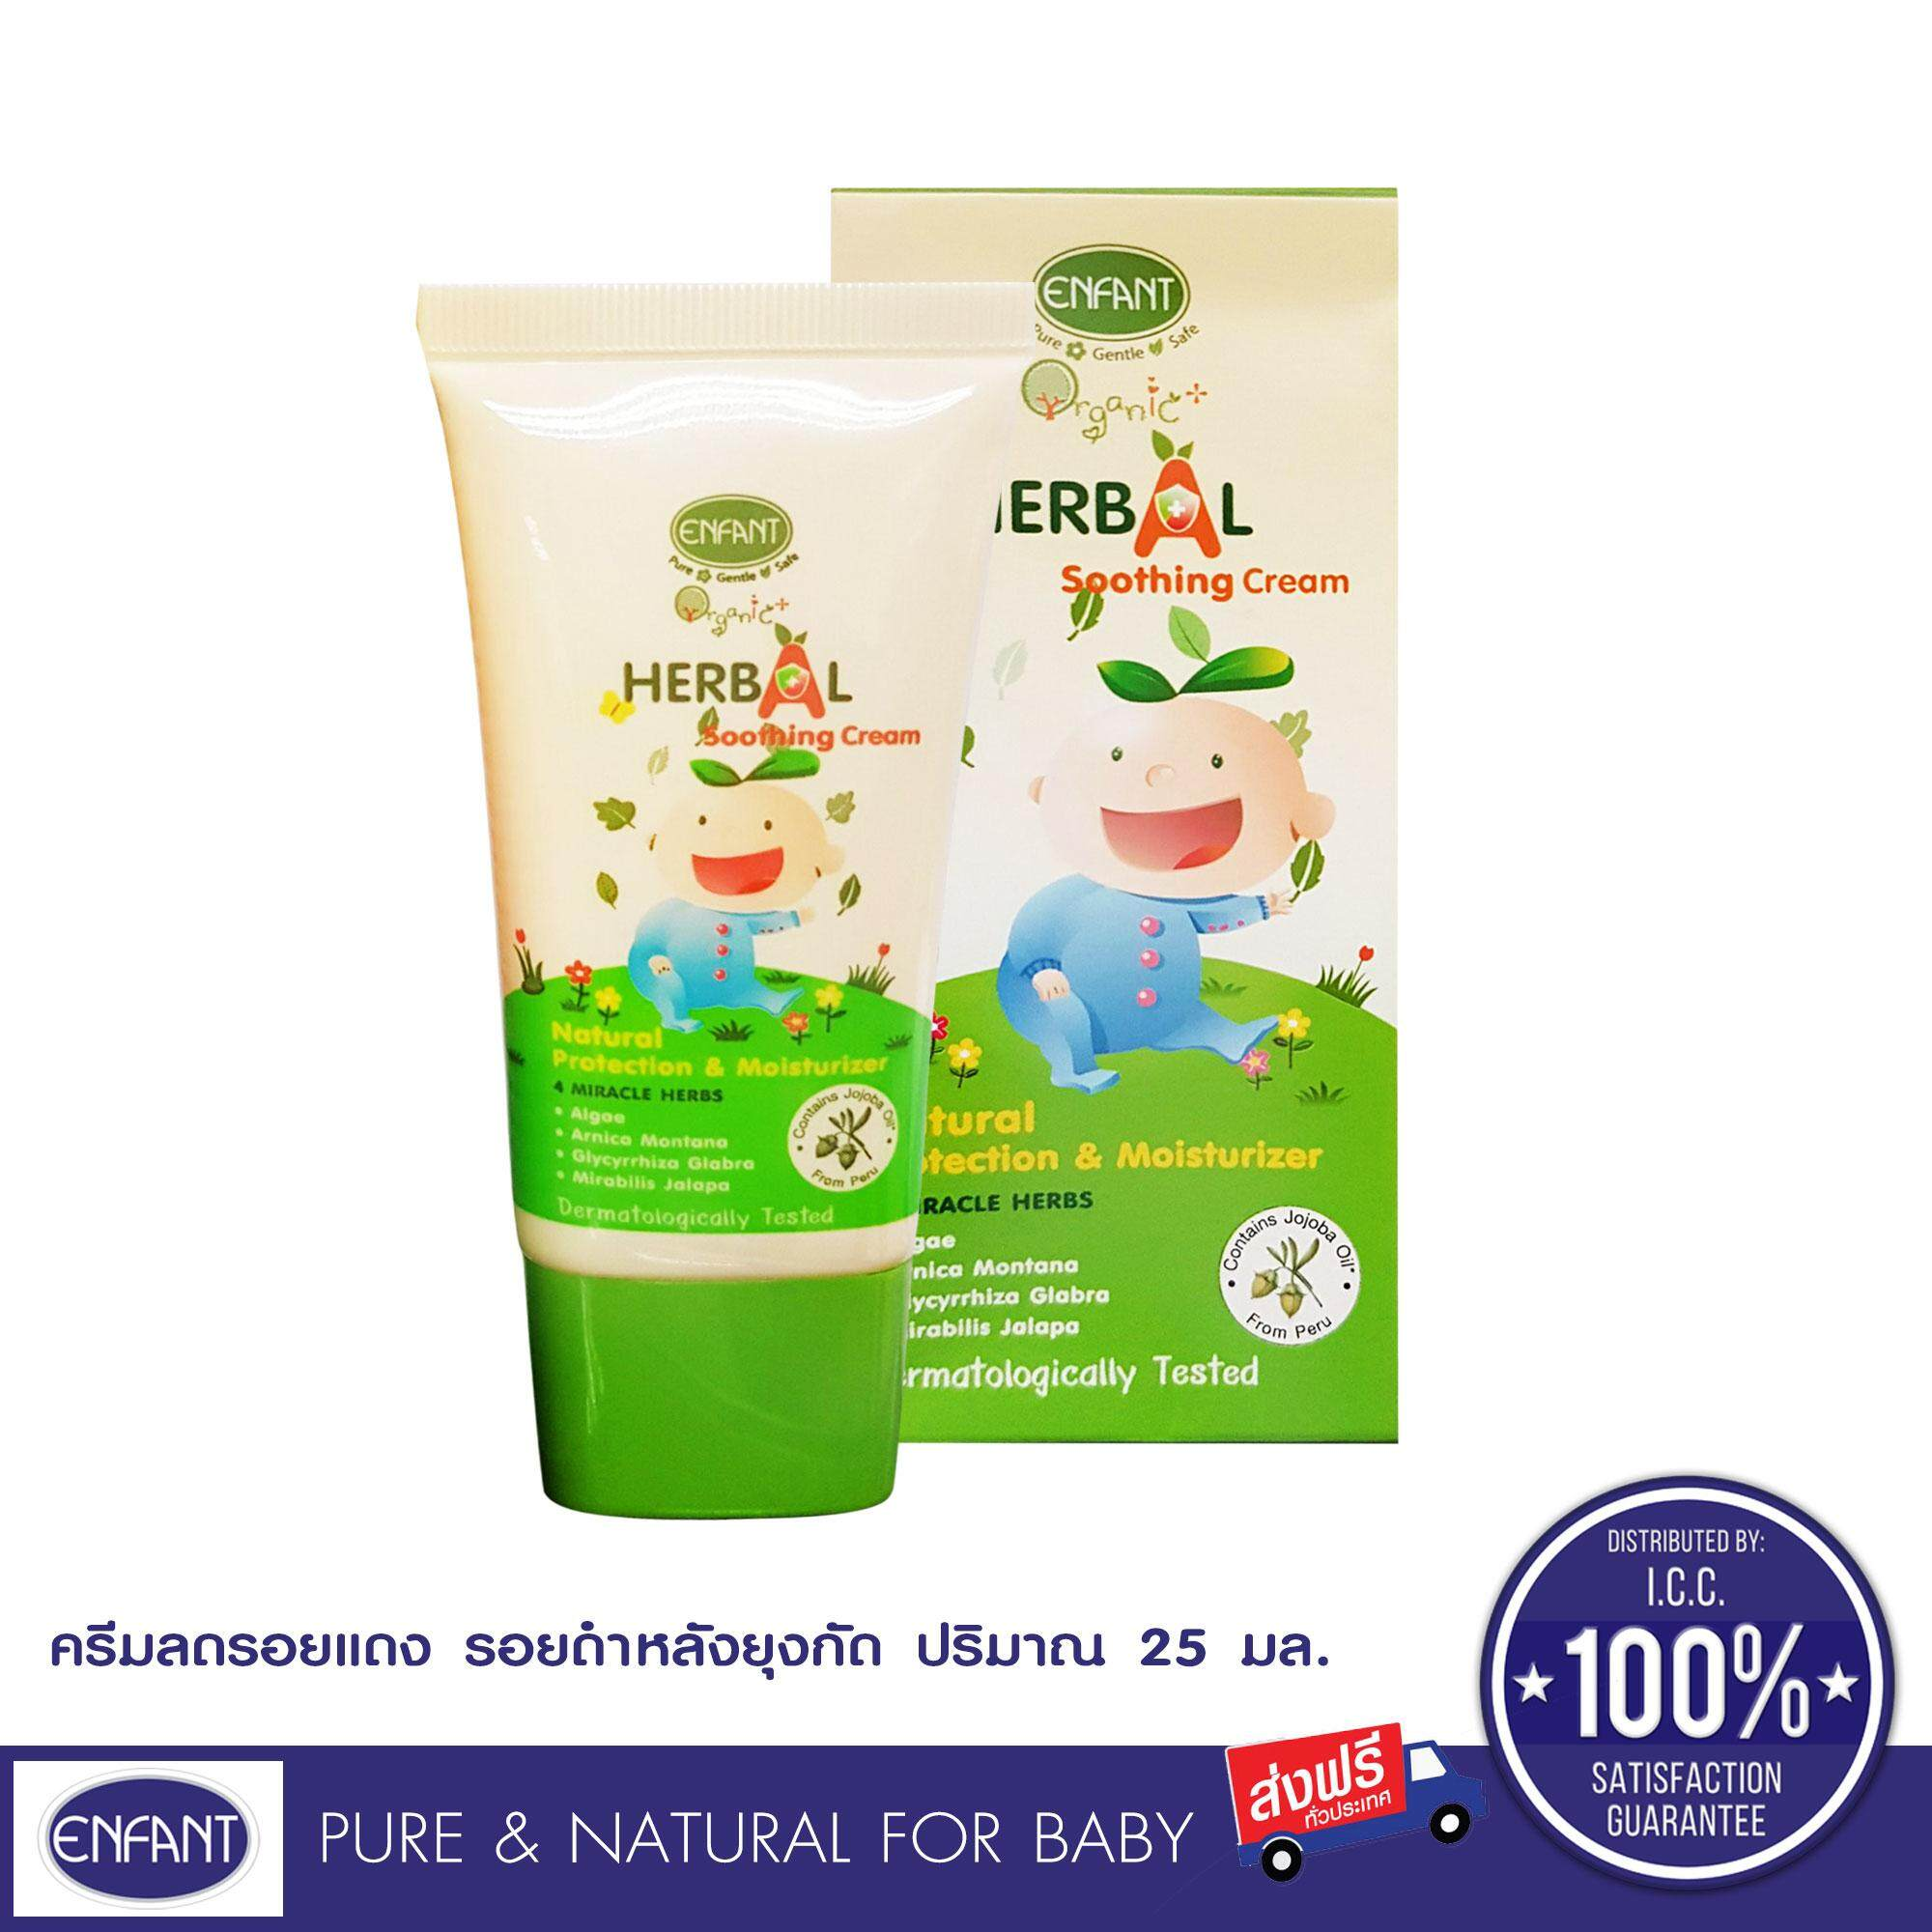 Enfant Organic Plus Herbal Soothing Cream By Enfant_thailandbest.